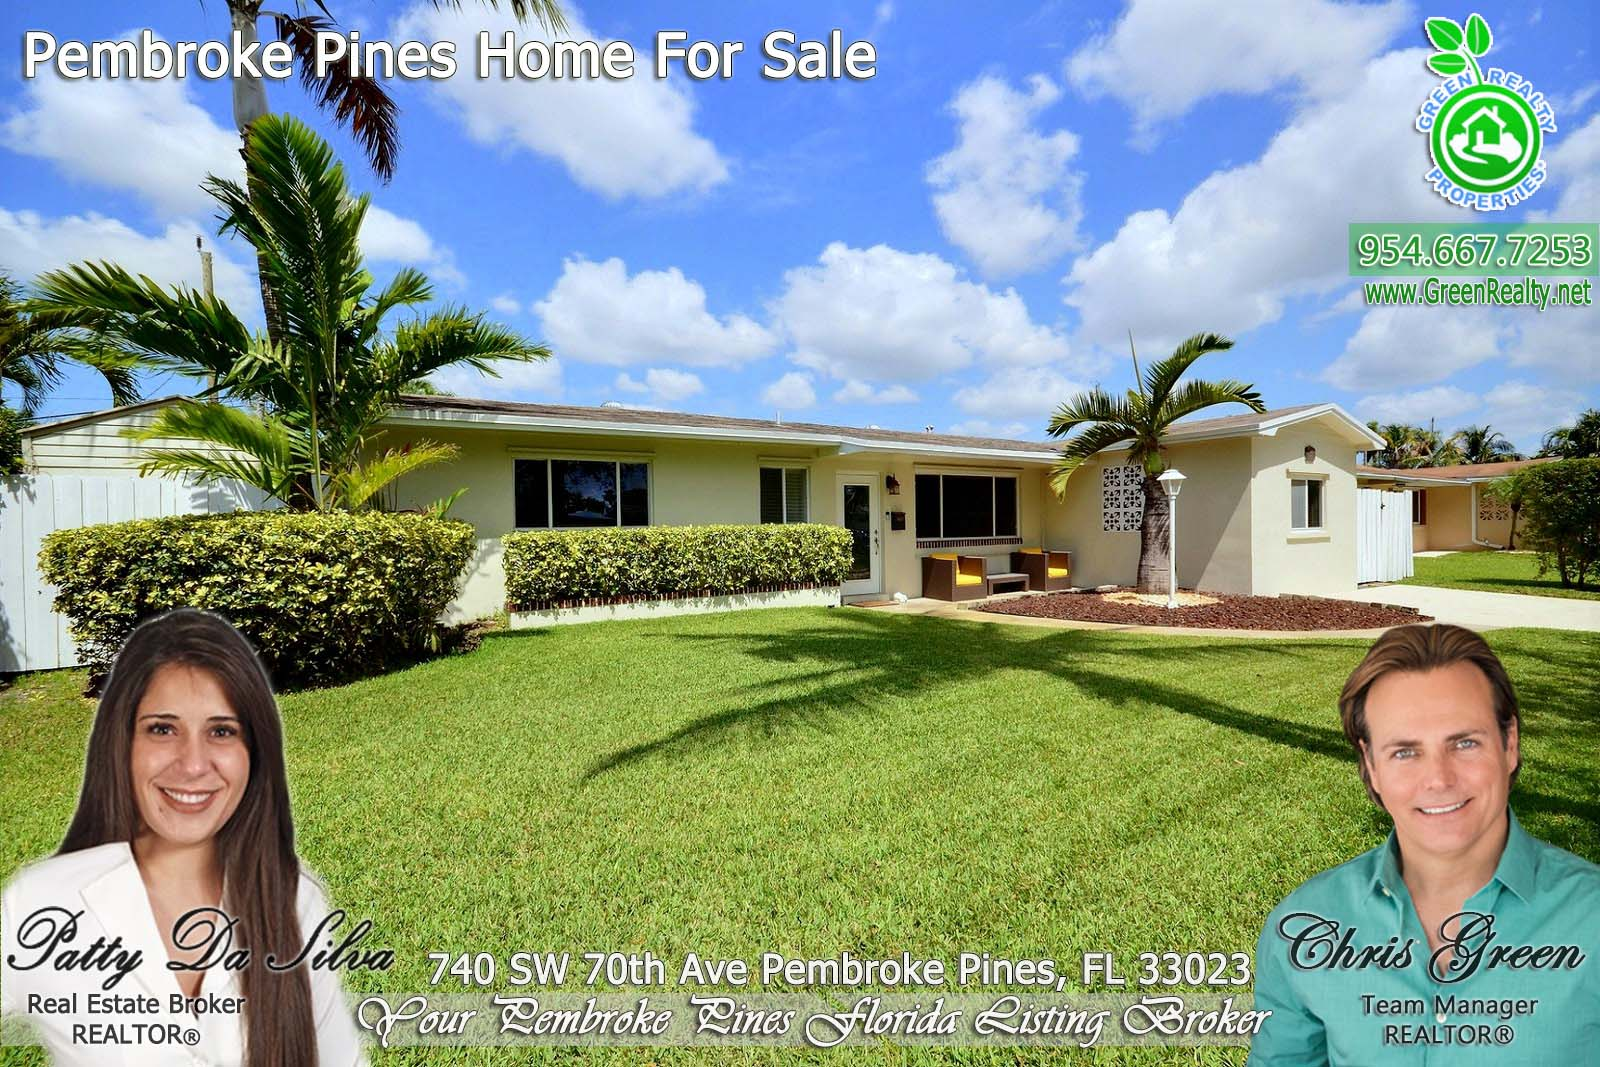 32 Pembroke Pines Real Estate For Sale (3)